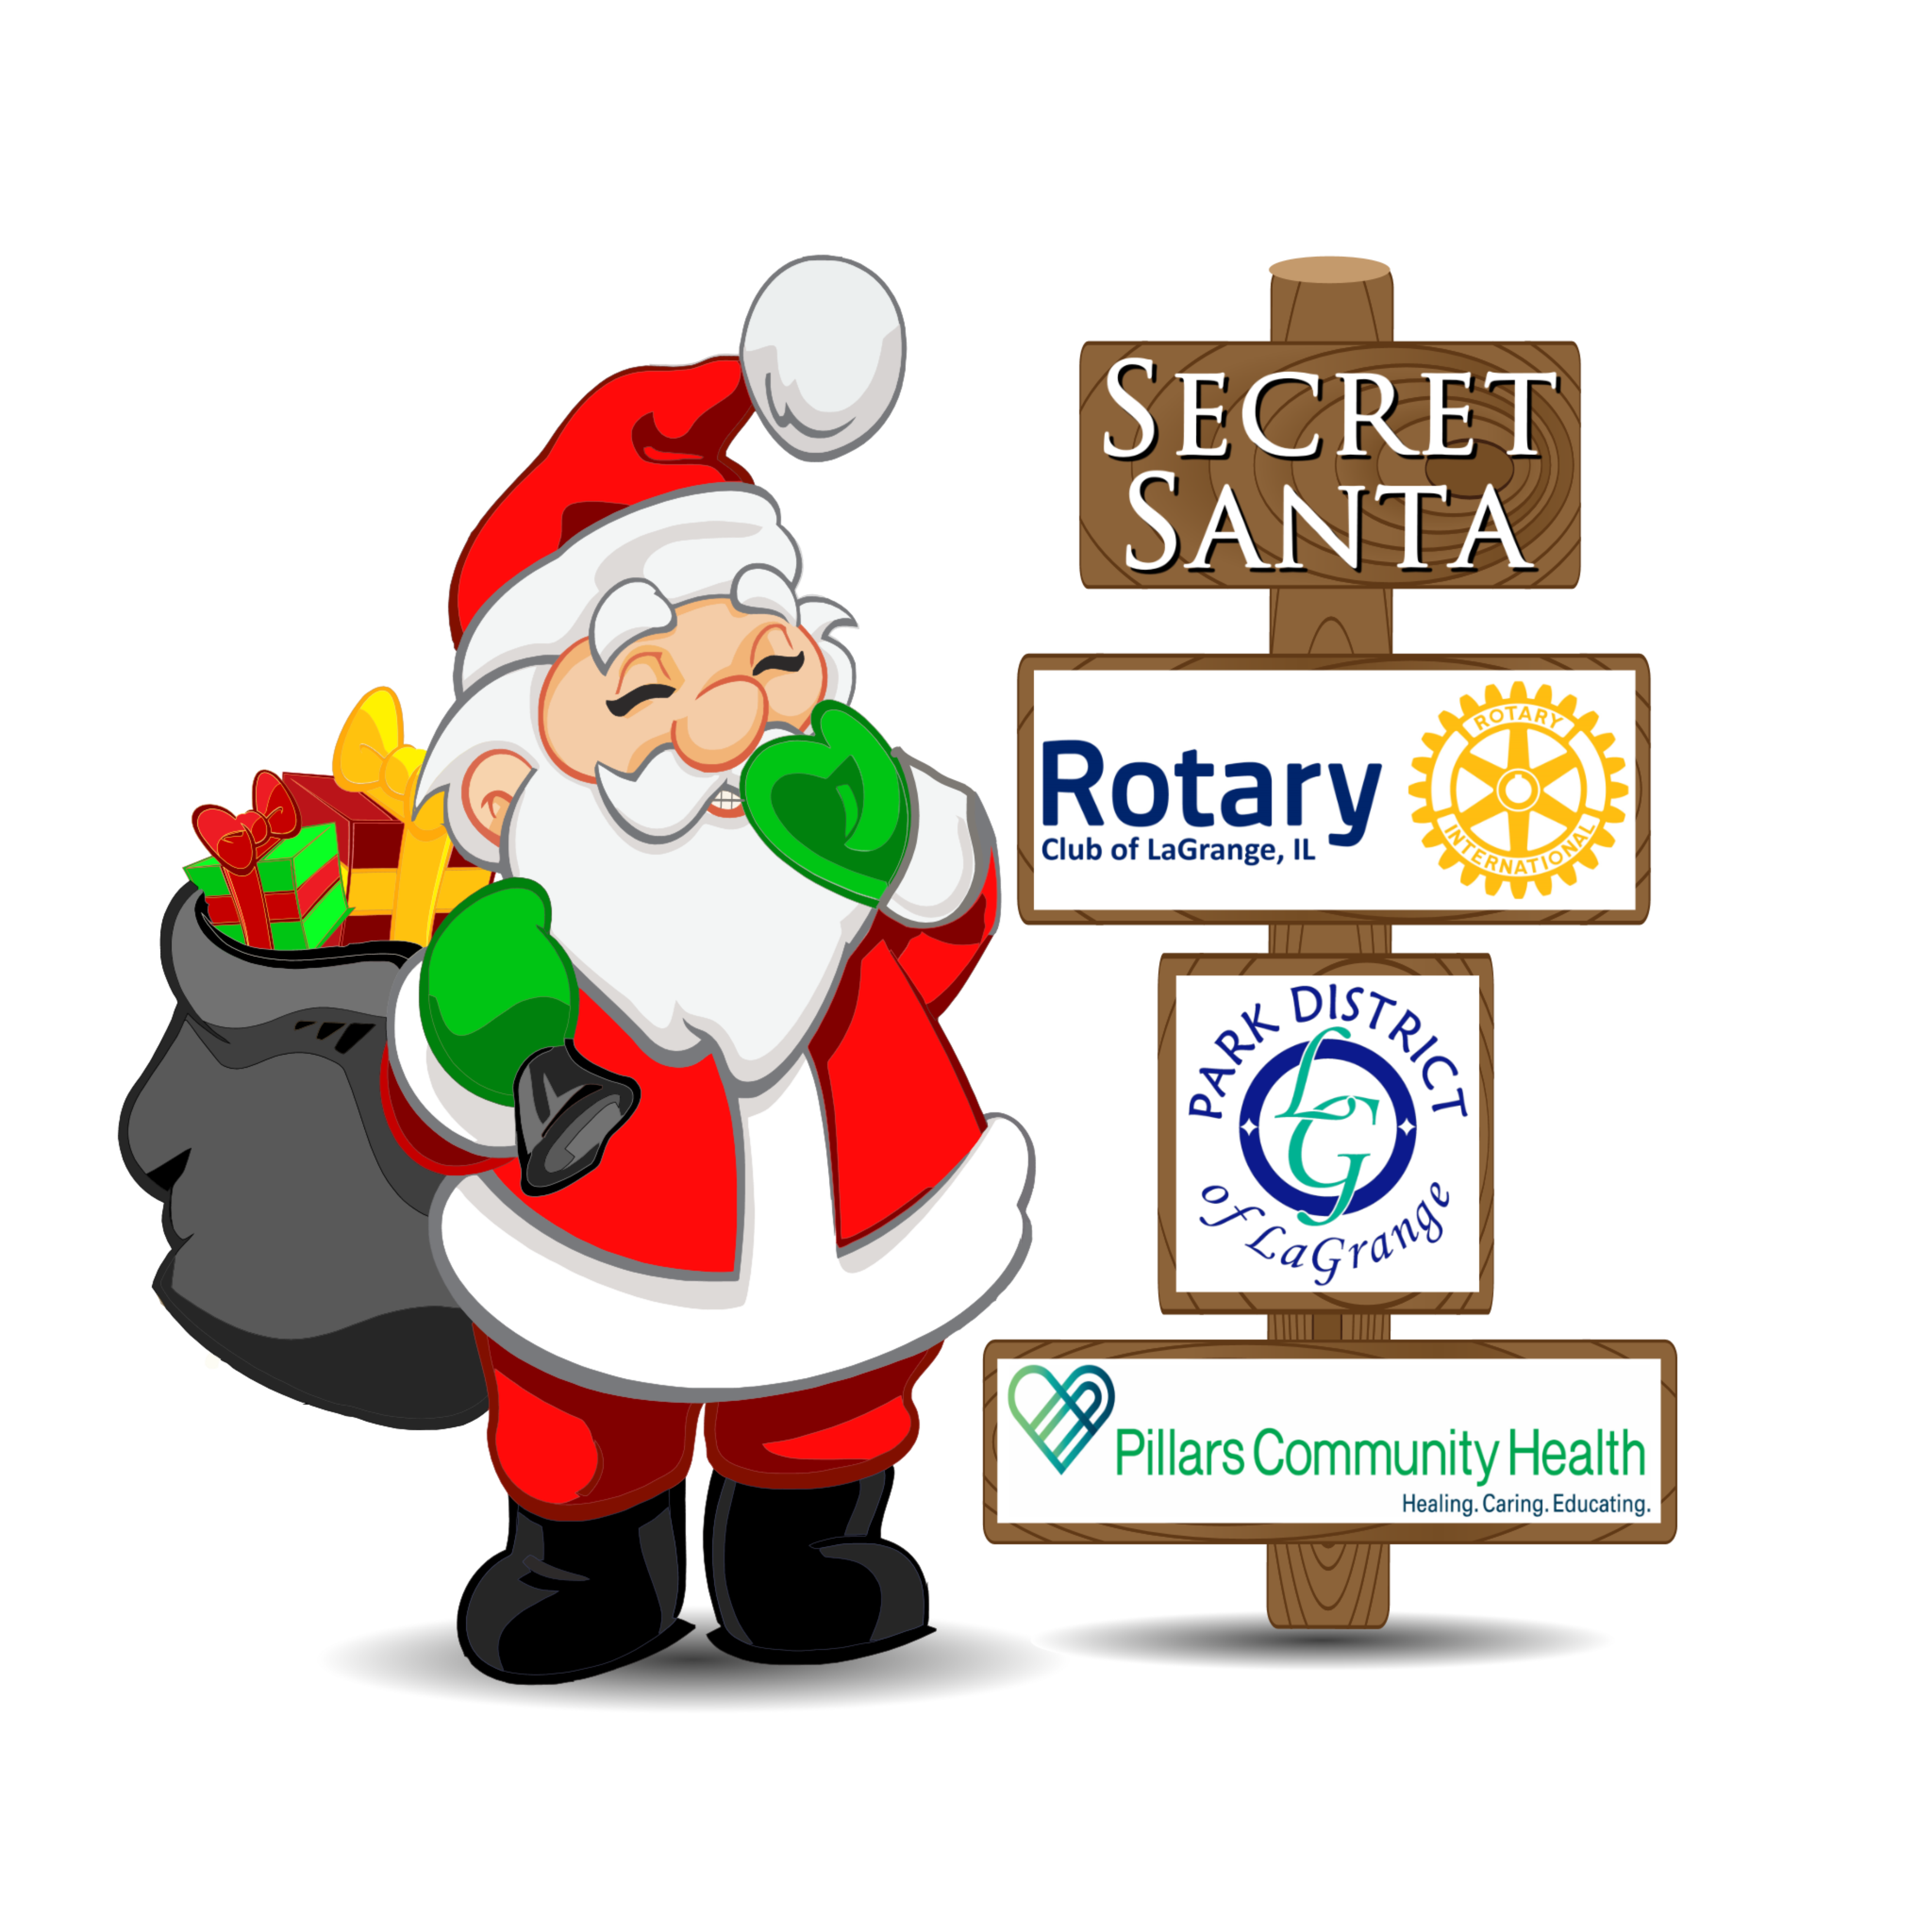 Secret Santa png logo 2018